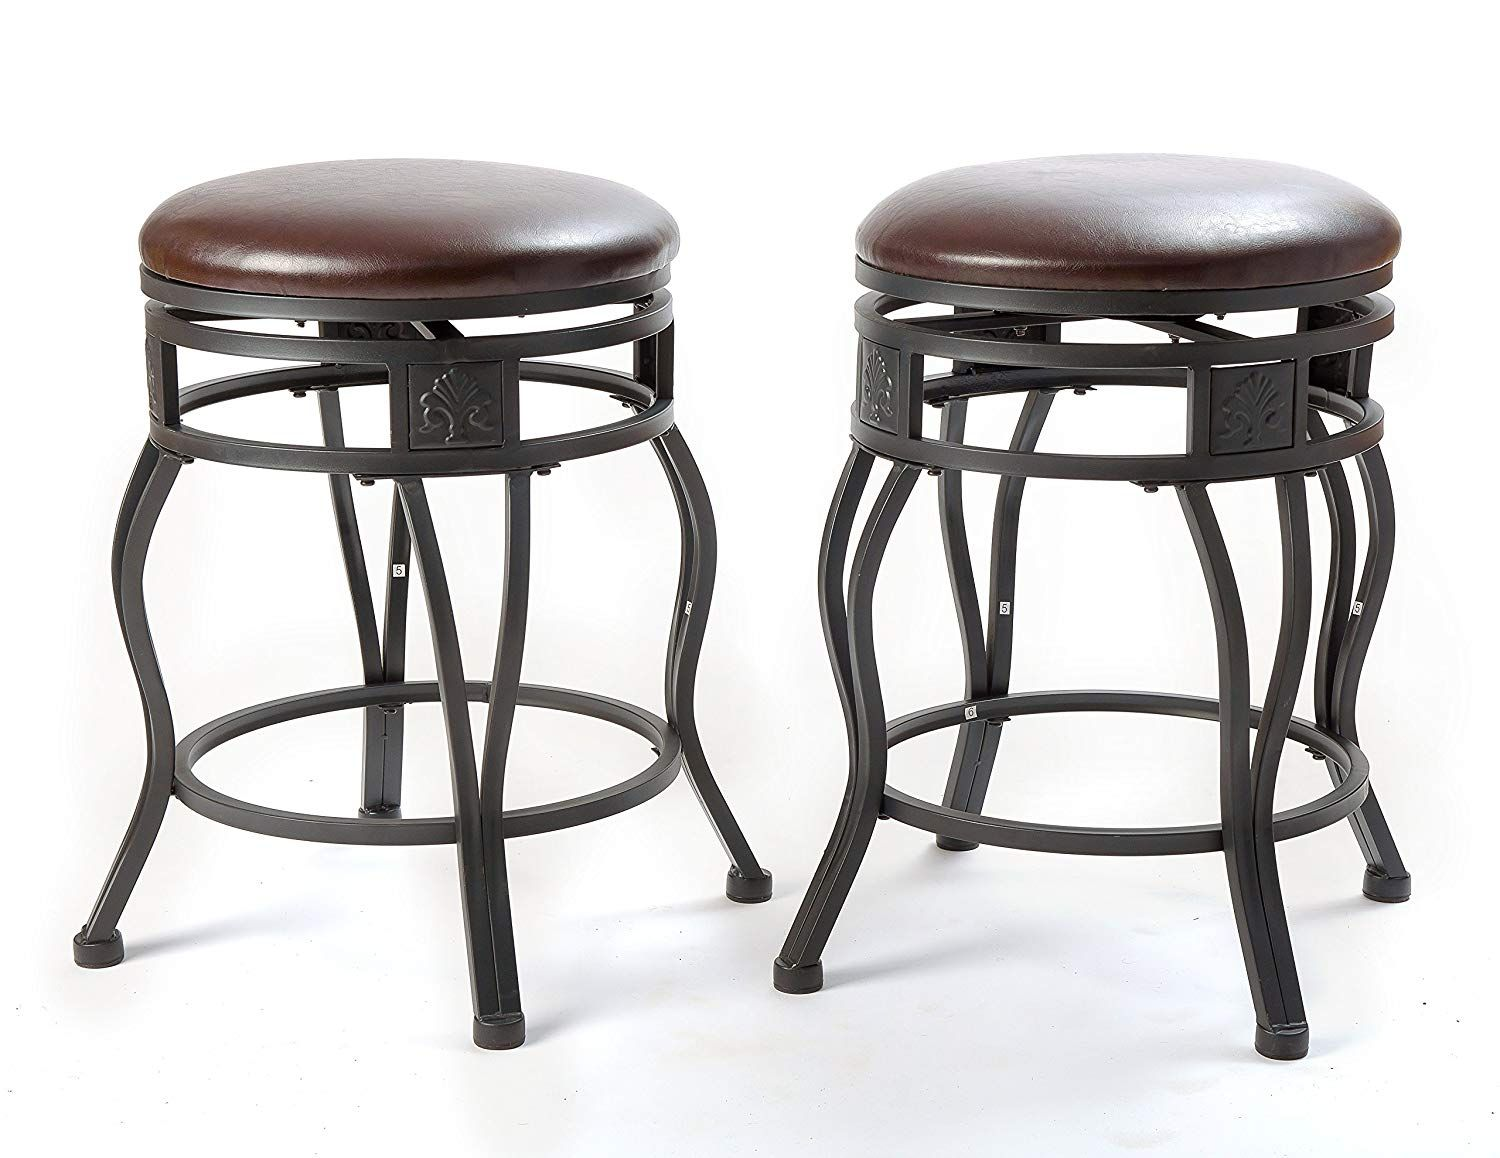 Ehemco 24 Swivel Metal Barstool With Faux Leather Seat In